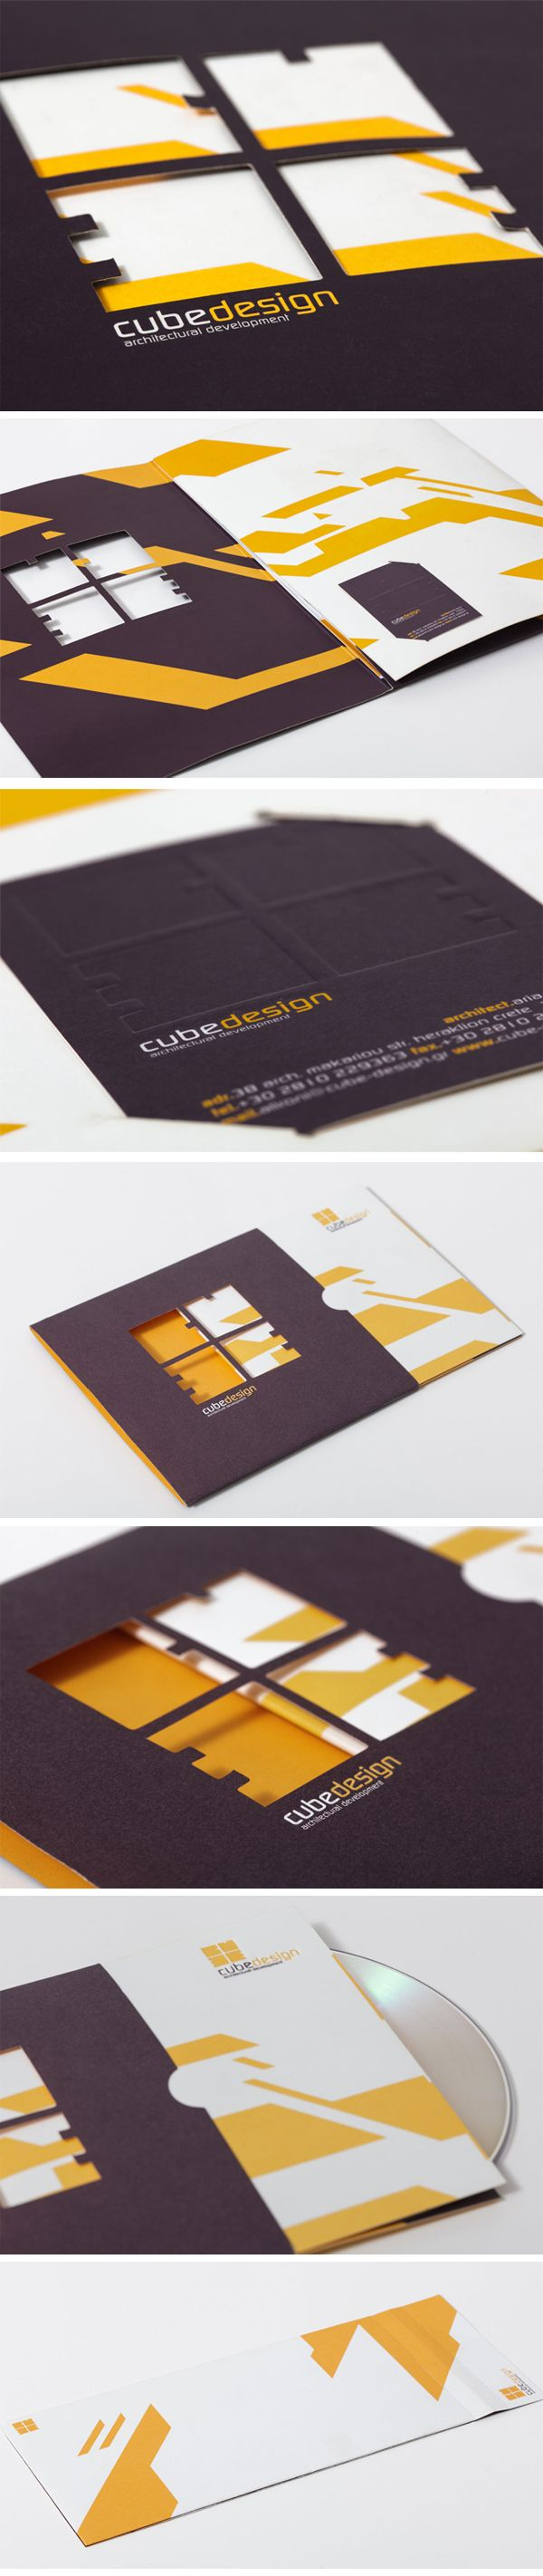 Corporate identity and logo for the architectural office Cube Design #die-cutting #debossing #logo #stationary